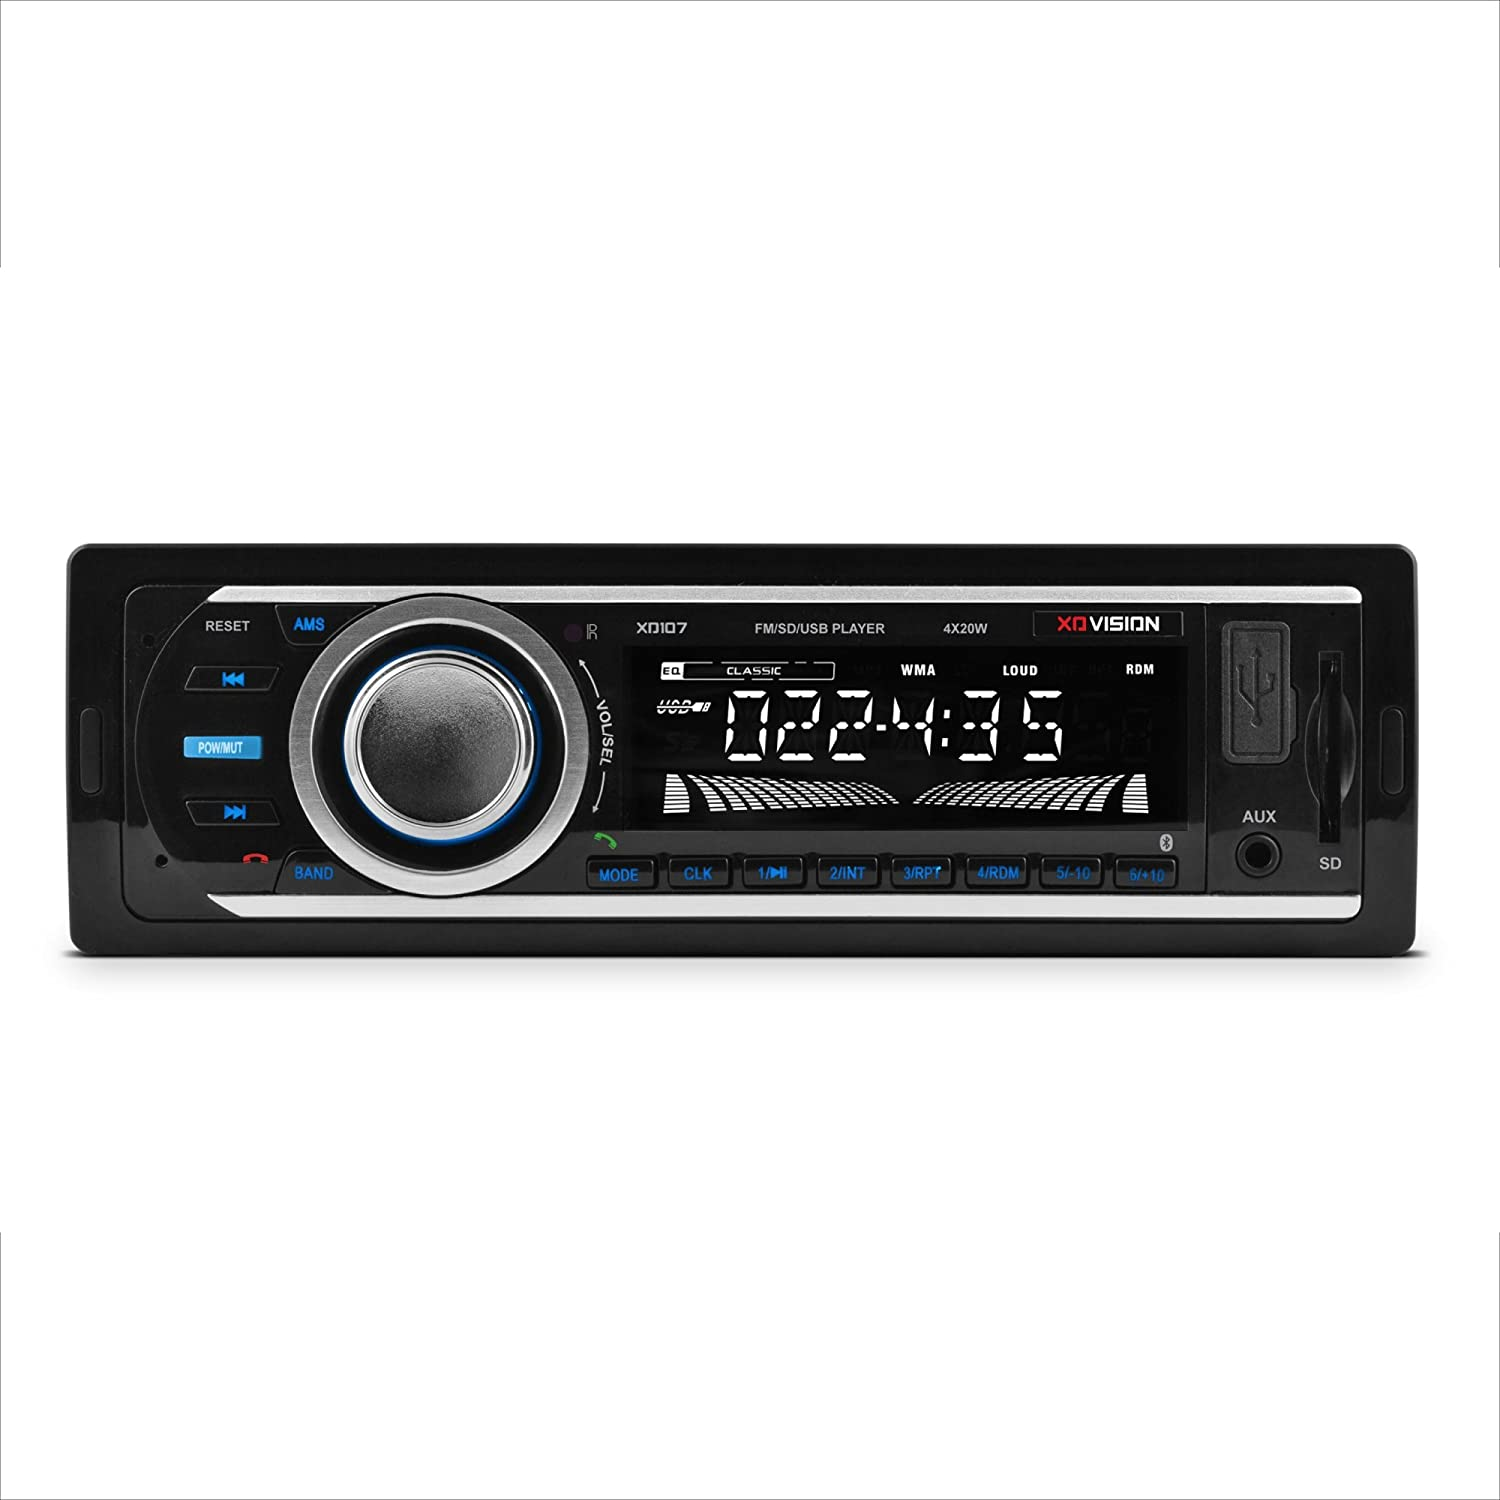 Car Stereo, XO Vision Wireless Bluetooth Car Stereo Receiver with 20 watts x 4, USB Port , SD Card Slot, and MP3 and FM [ XD107 ]